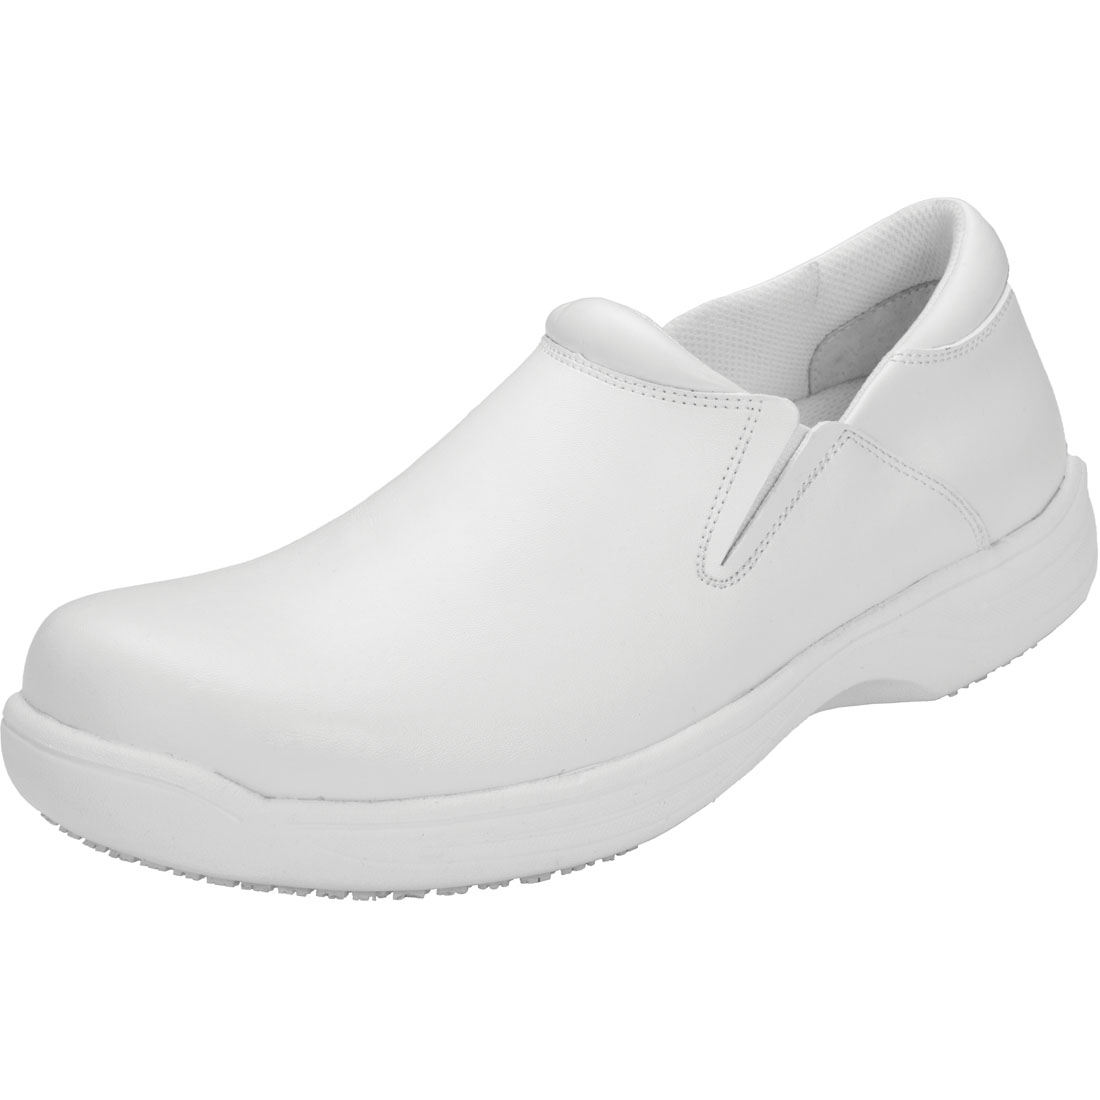 footwear slip resistant mens step in footwear